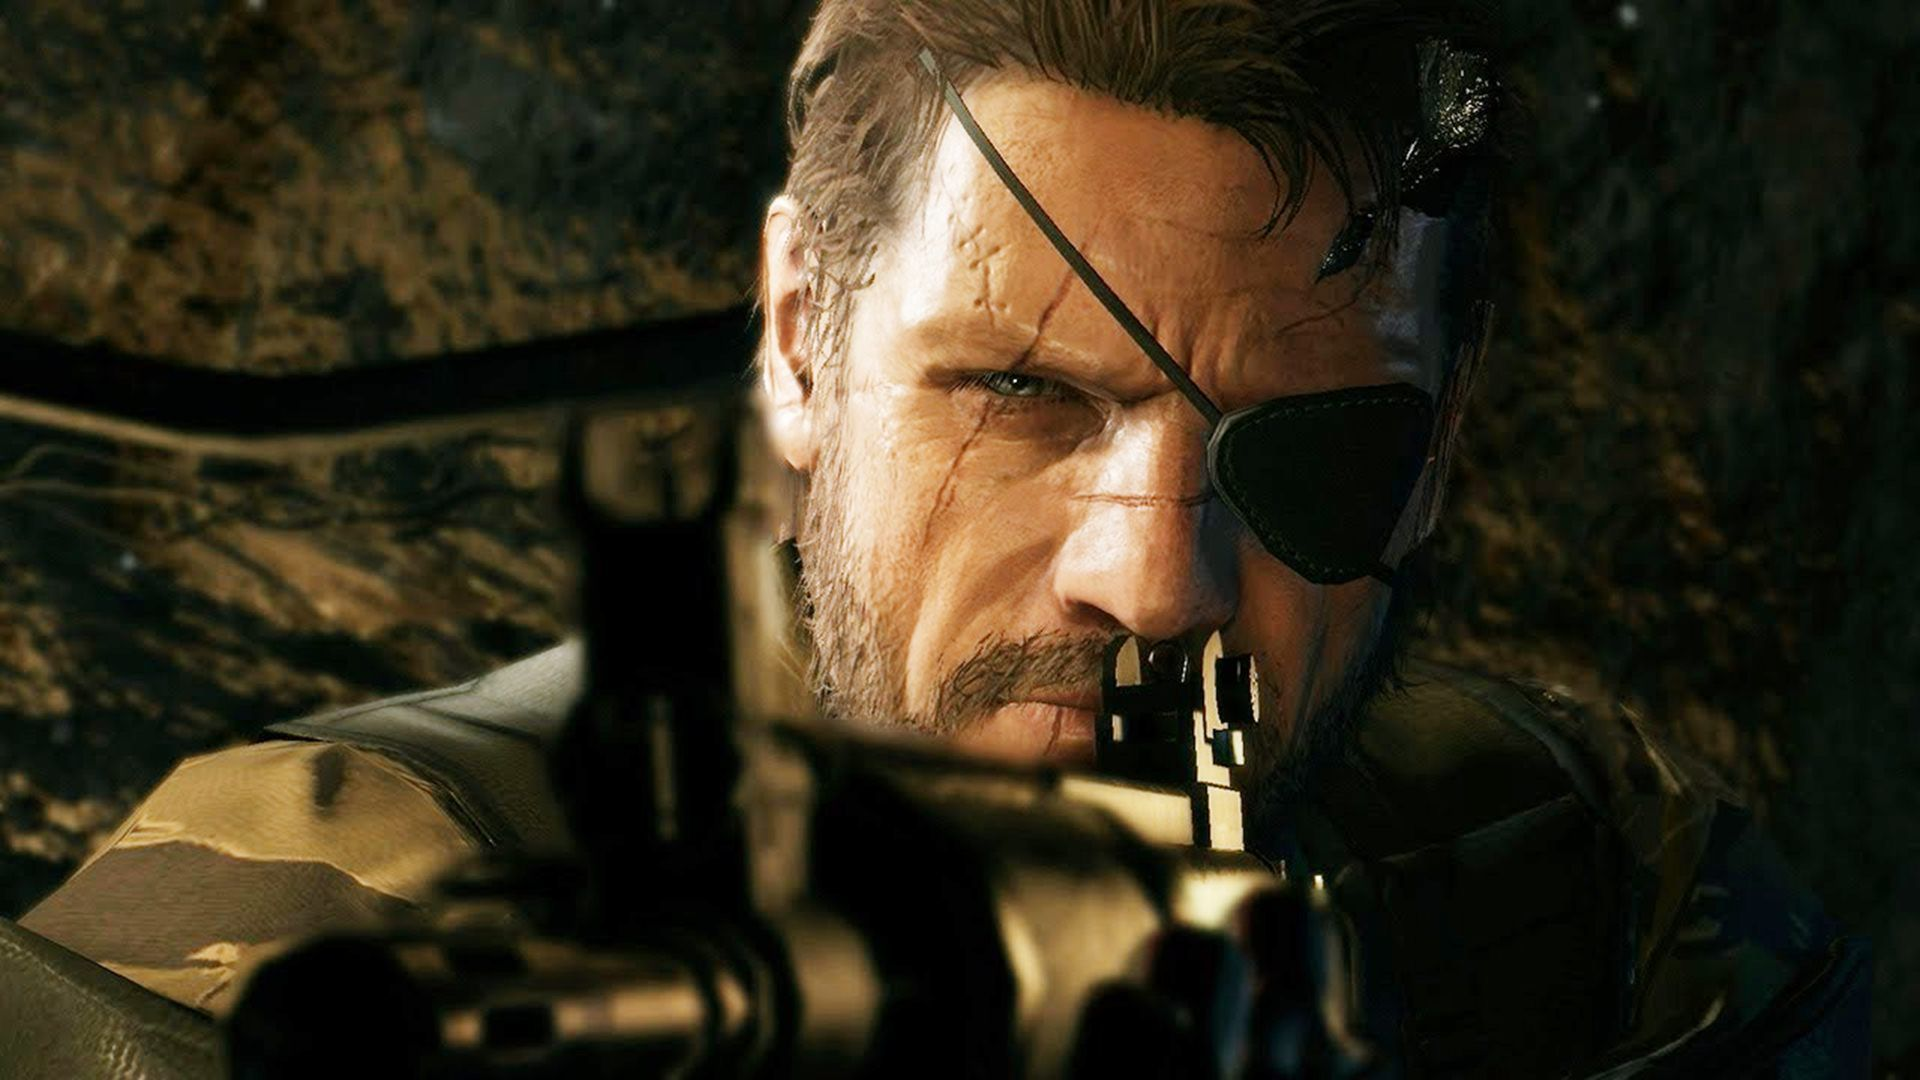 Phantom Pain 4k Wallpapers Top Free Phantom Pain 4k Backgrounds